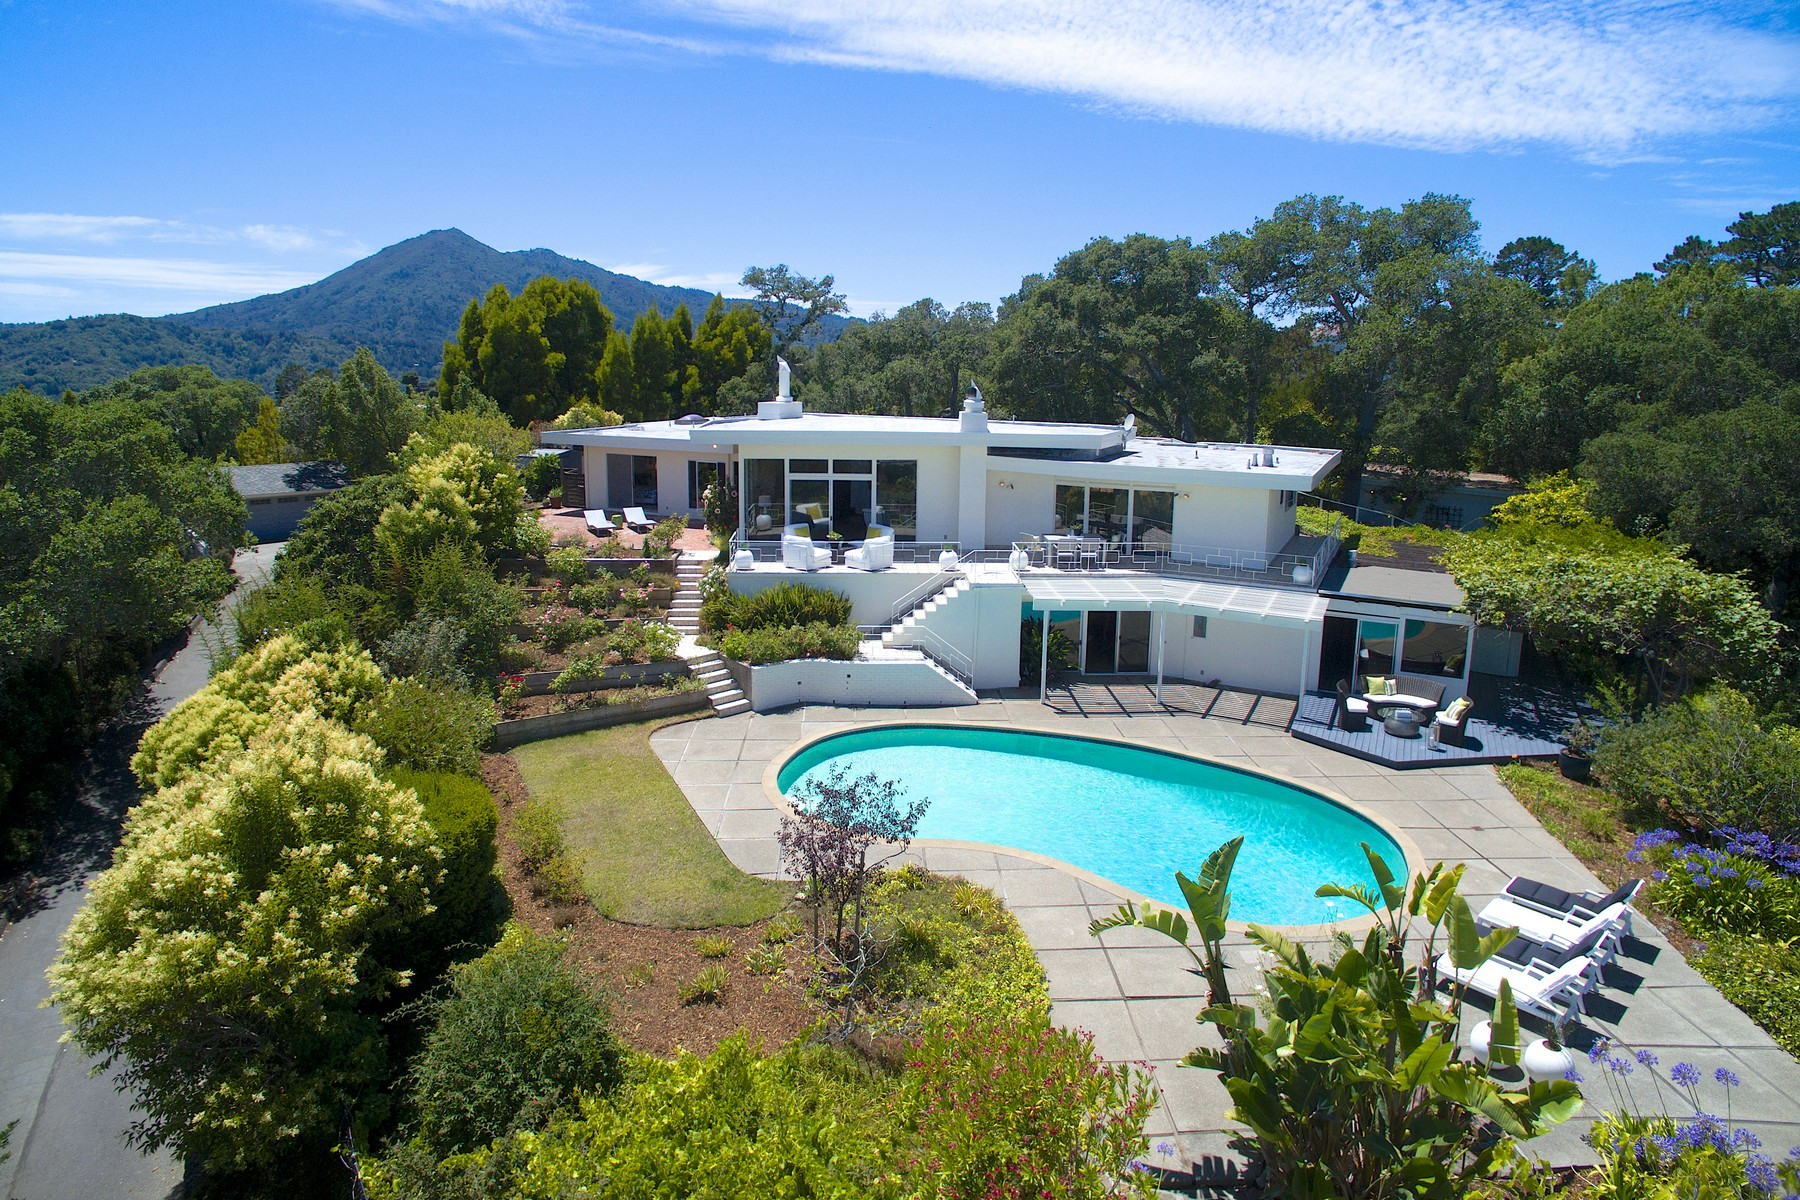 Single Family Home for Sale at Spectacular Mid-Century Modern Gated Estate at the Top of Bret Harte Heights 40 Twain Harte Lane San Rafael, California 94901 United States